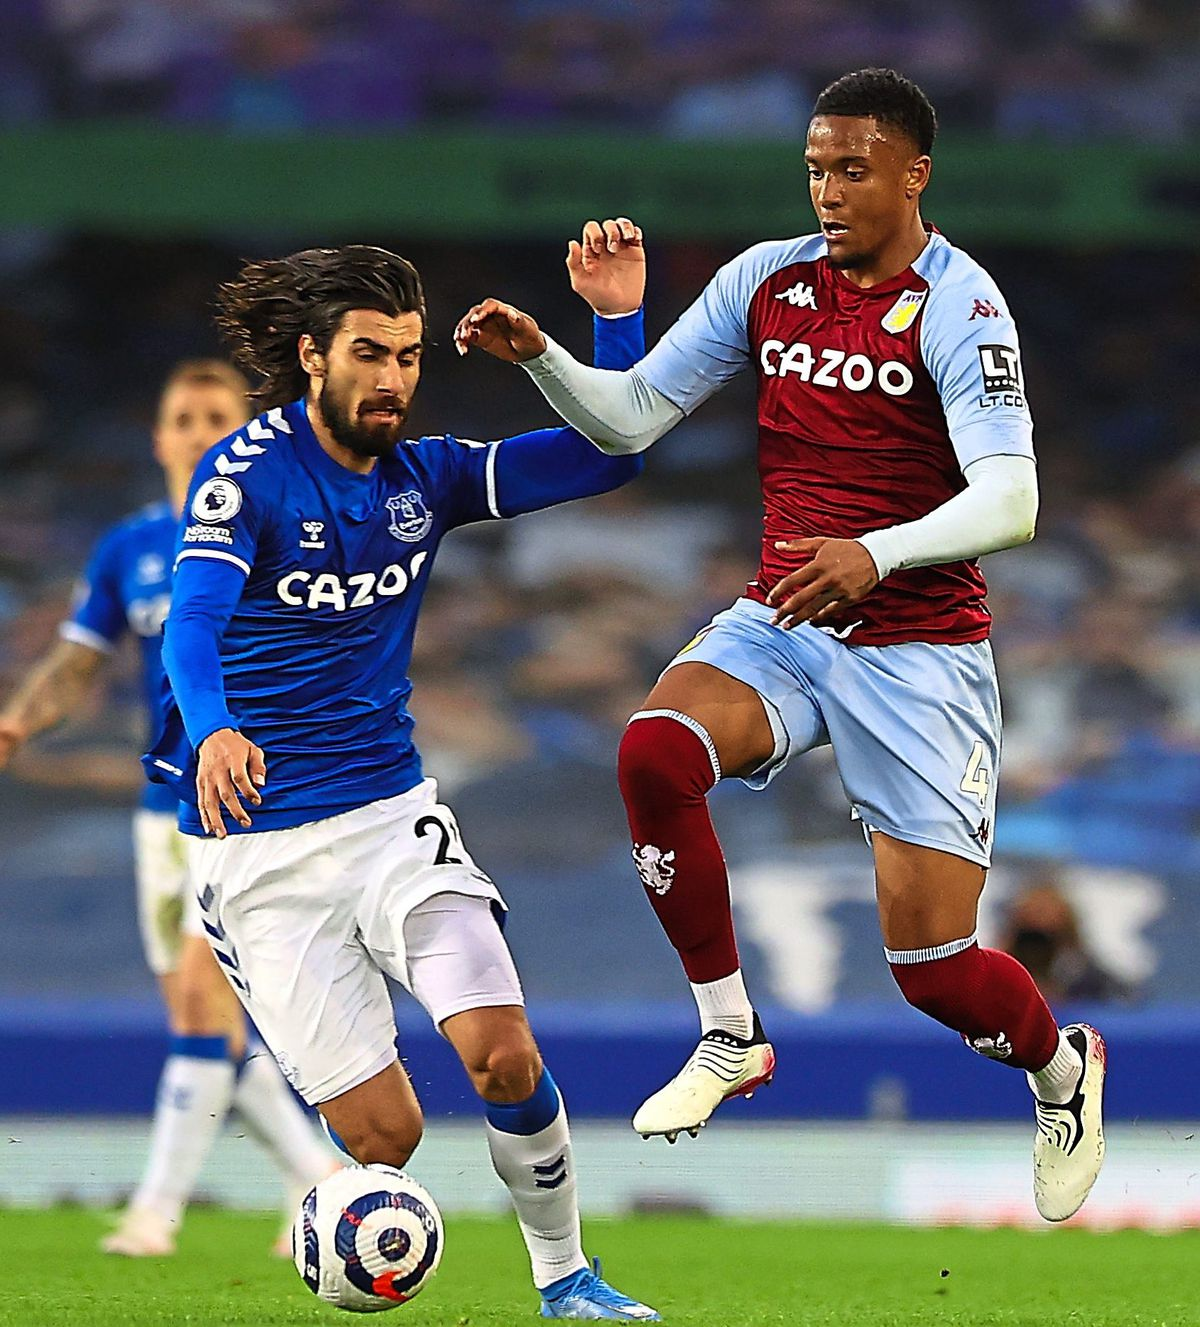 """Everton's Andre Gomes (left) and Aston Villa's Ezri Konsa battle for the ball during the Premier League match at Goodison Park, Liverpool. Issue date: Saturday May 1, 2021. PA Photo. See PA story SOCCER Everton. Photo credit should read: Naomi Baker/PA Wire. RESTRICTIONS: EDITORIAL USE ONLY No use with unauthorised audio, video, data, fixture lists, club/league logos or """"live"""" services. Online in-match use limited to 120 images, no video emulation. No use in betting, games or single club/league/player publications."""